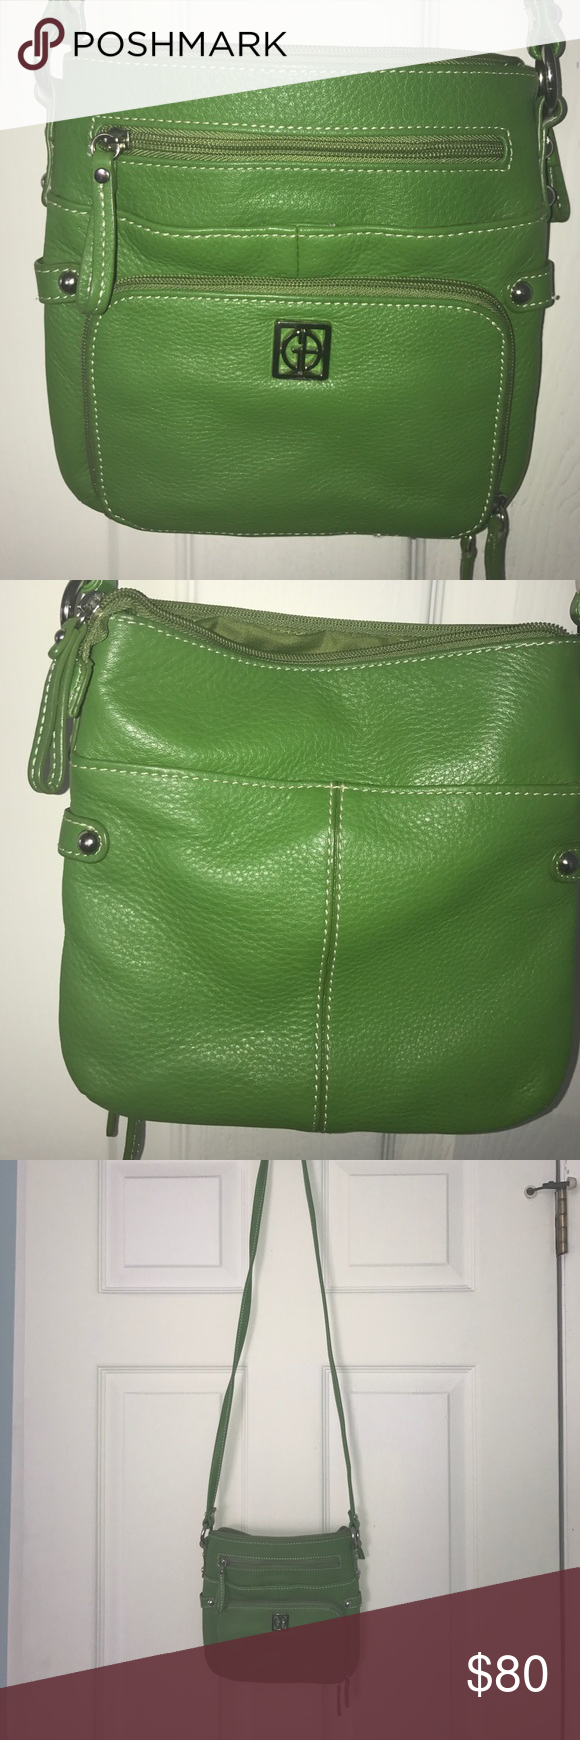 Gian Bernini crossbody with multiple pockets Gian Bernini crossbody with multiple pockets in green. Several outside zippered pockets and pockets with snaps. Several inside pockets and zippered top Giani Bernini Bags Crossbody Bags